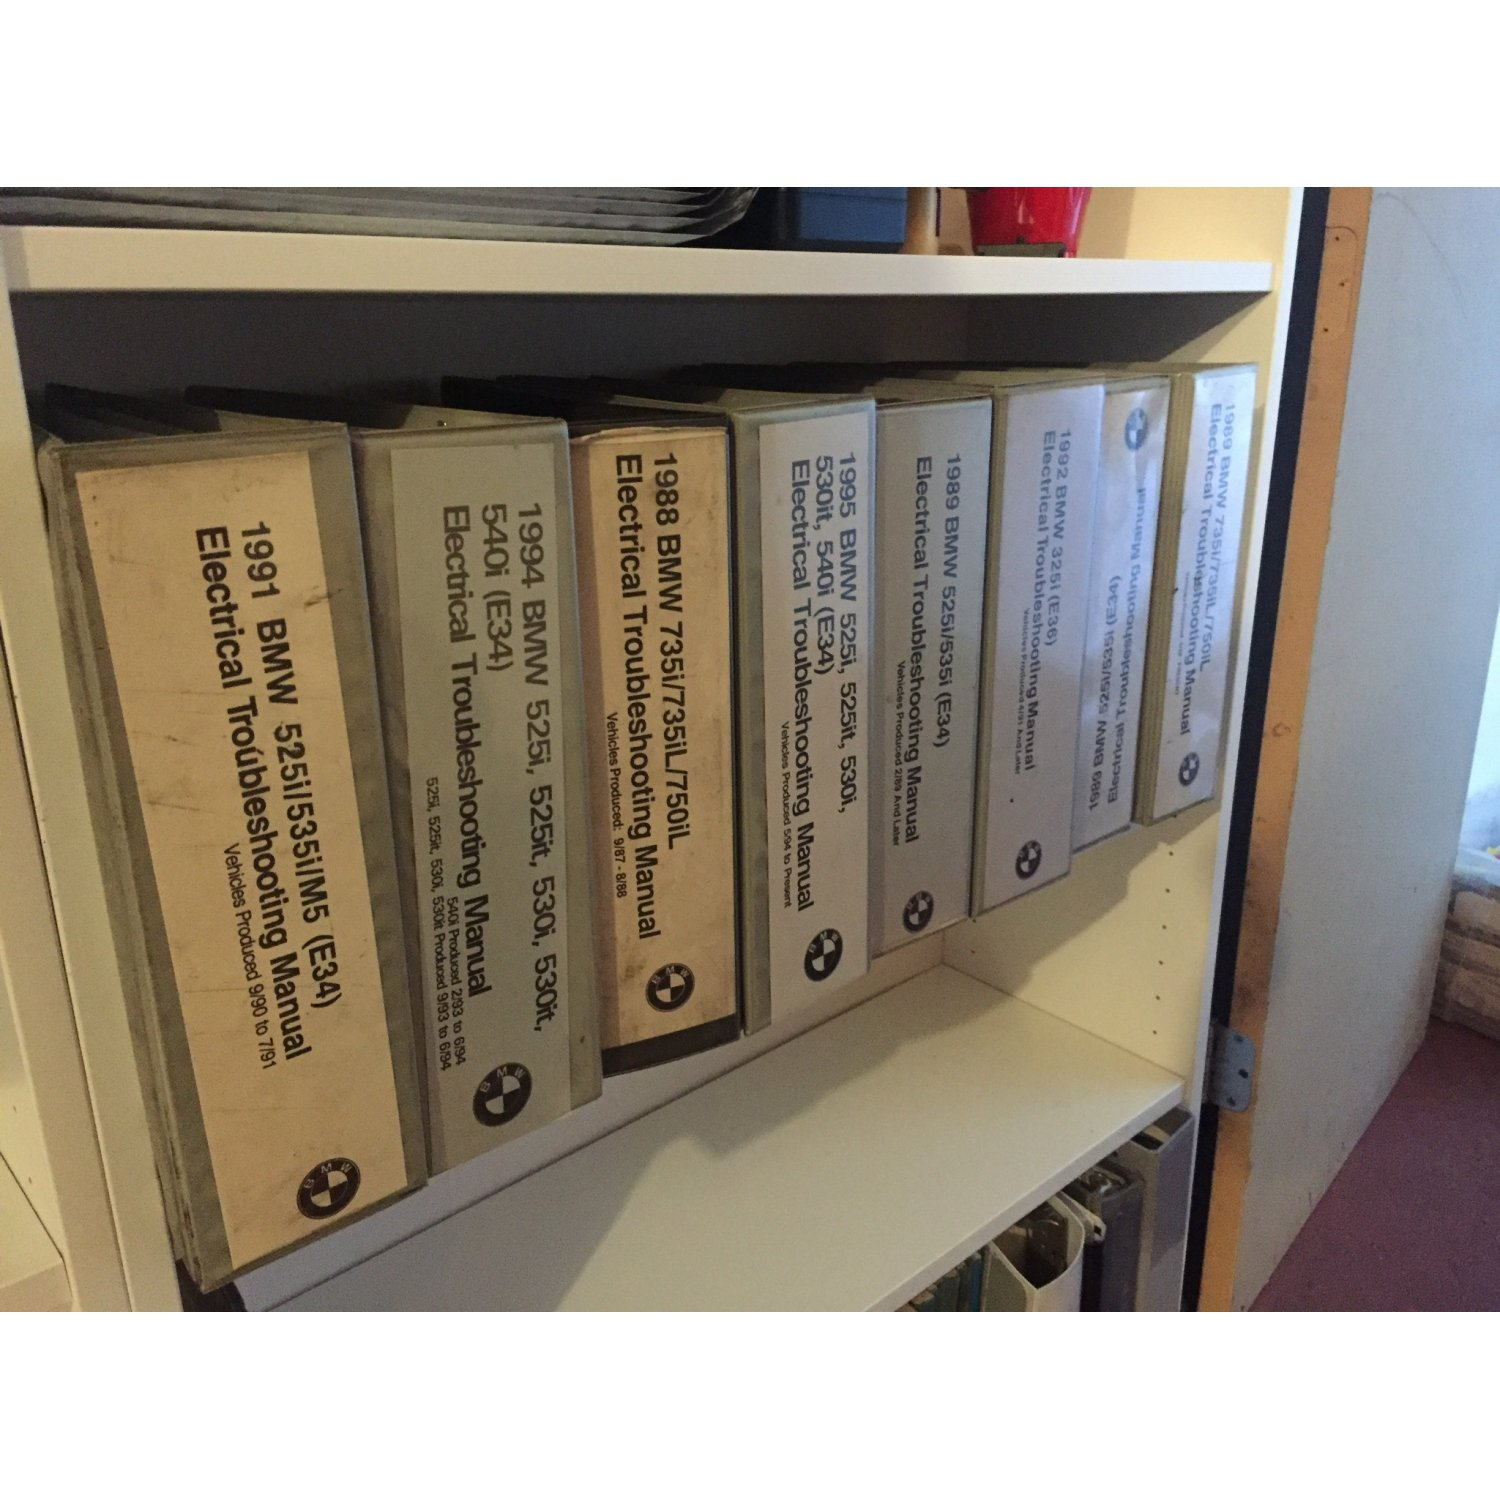 Details about Lot 8 BMW Rare Books ~ Factory Electrical Troubleshooting  Manual E36 M3 M5 E34